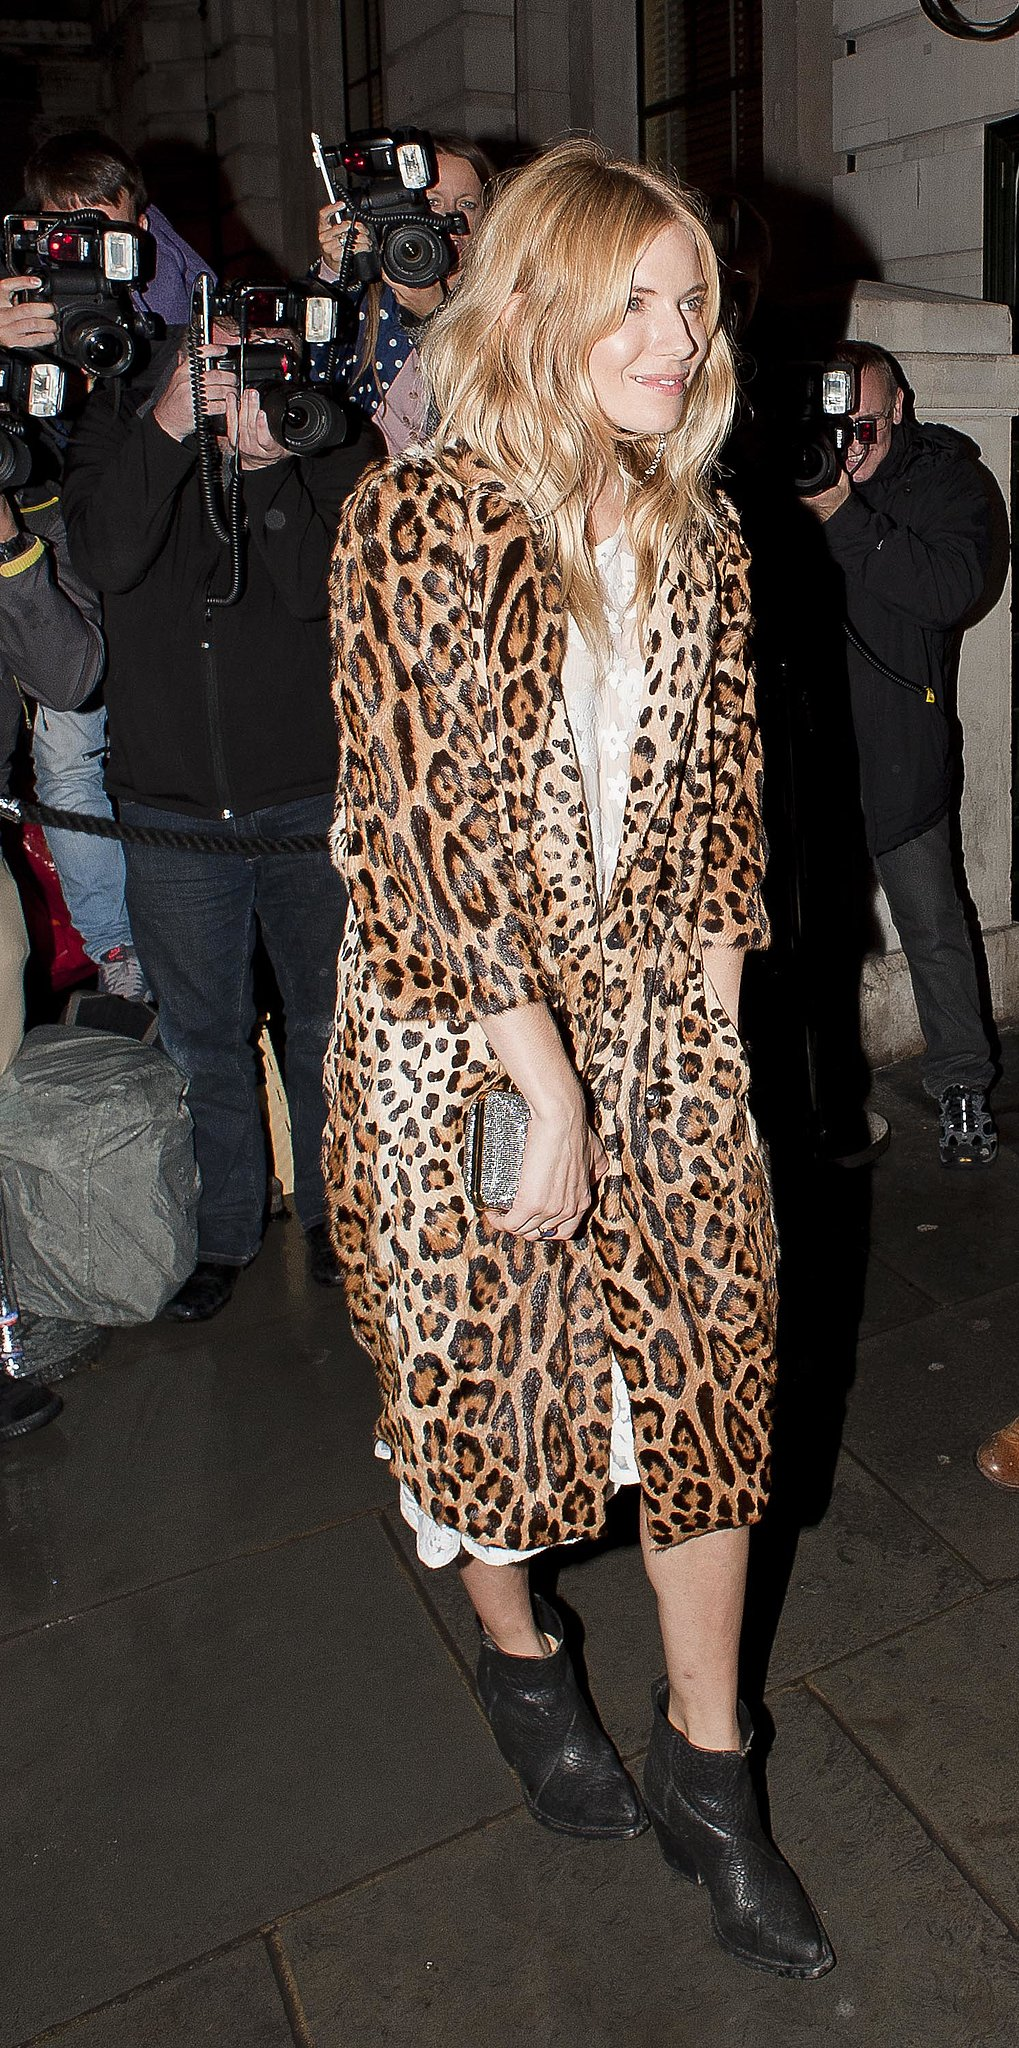 Sienna showcased her love of leopard in a plush printed coat for a Spring '14 London Fashion Week event.